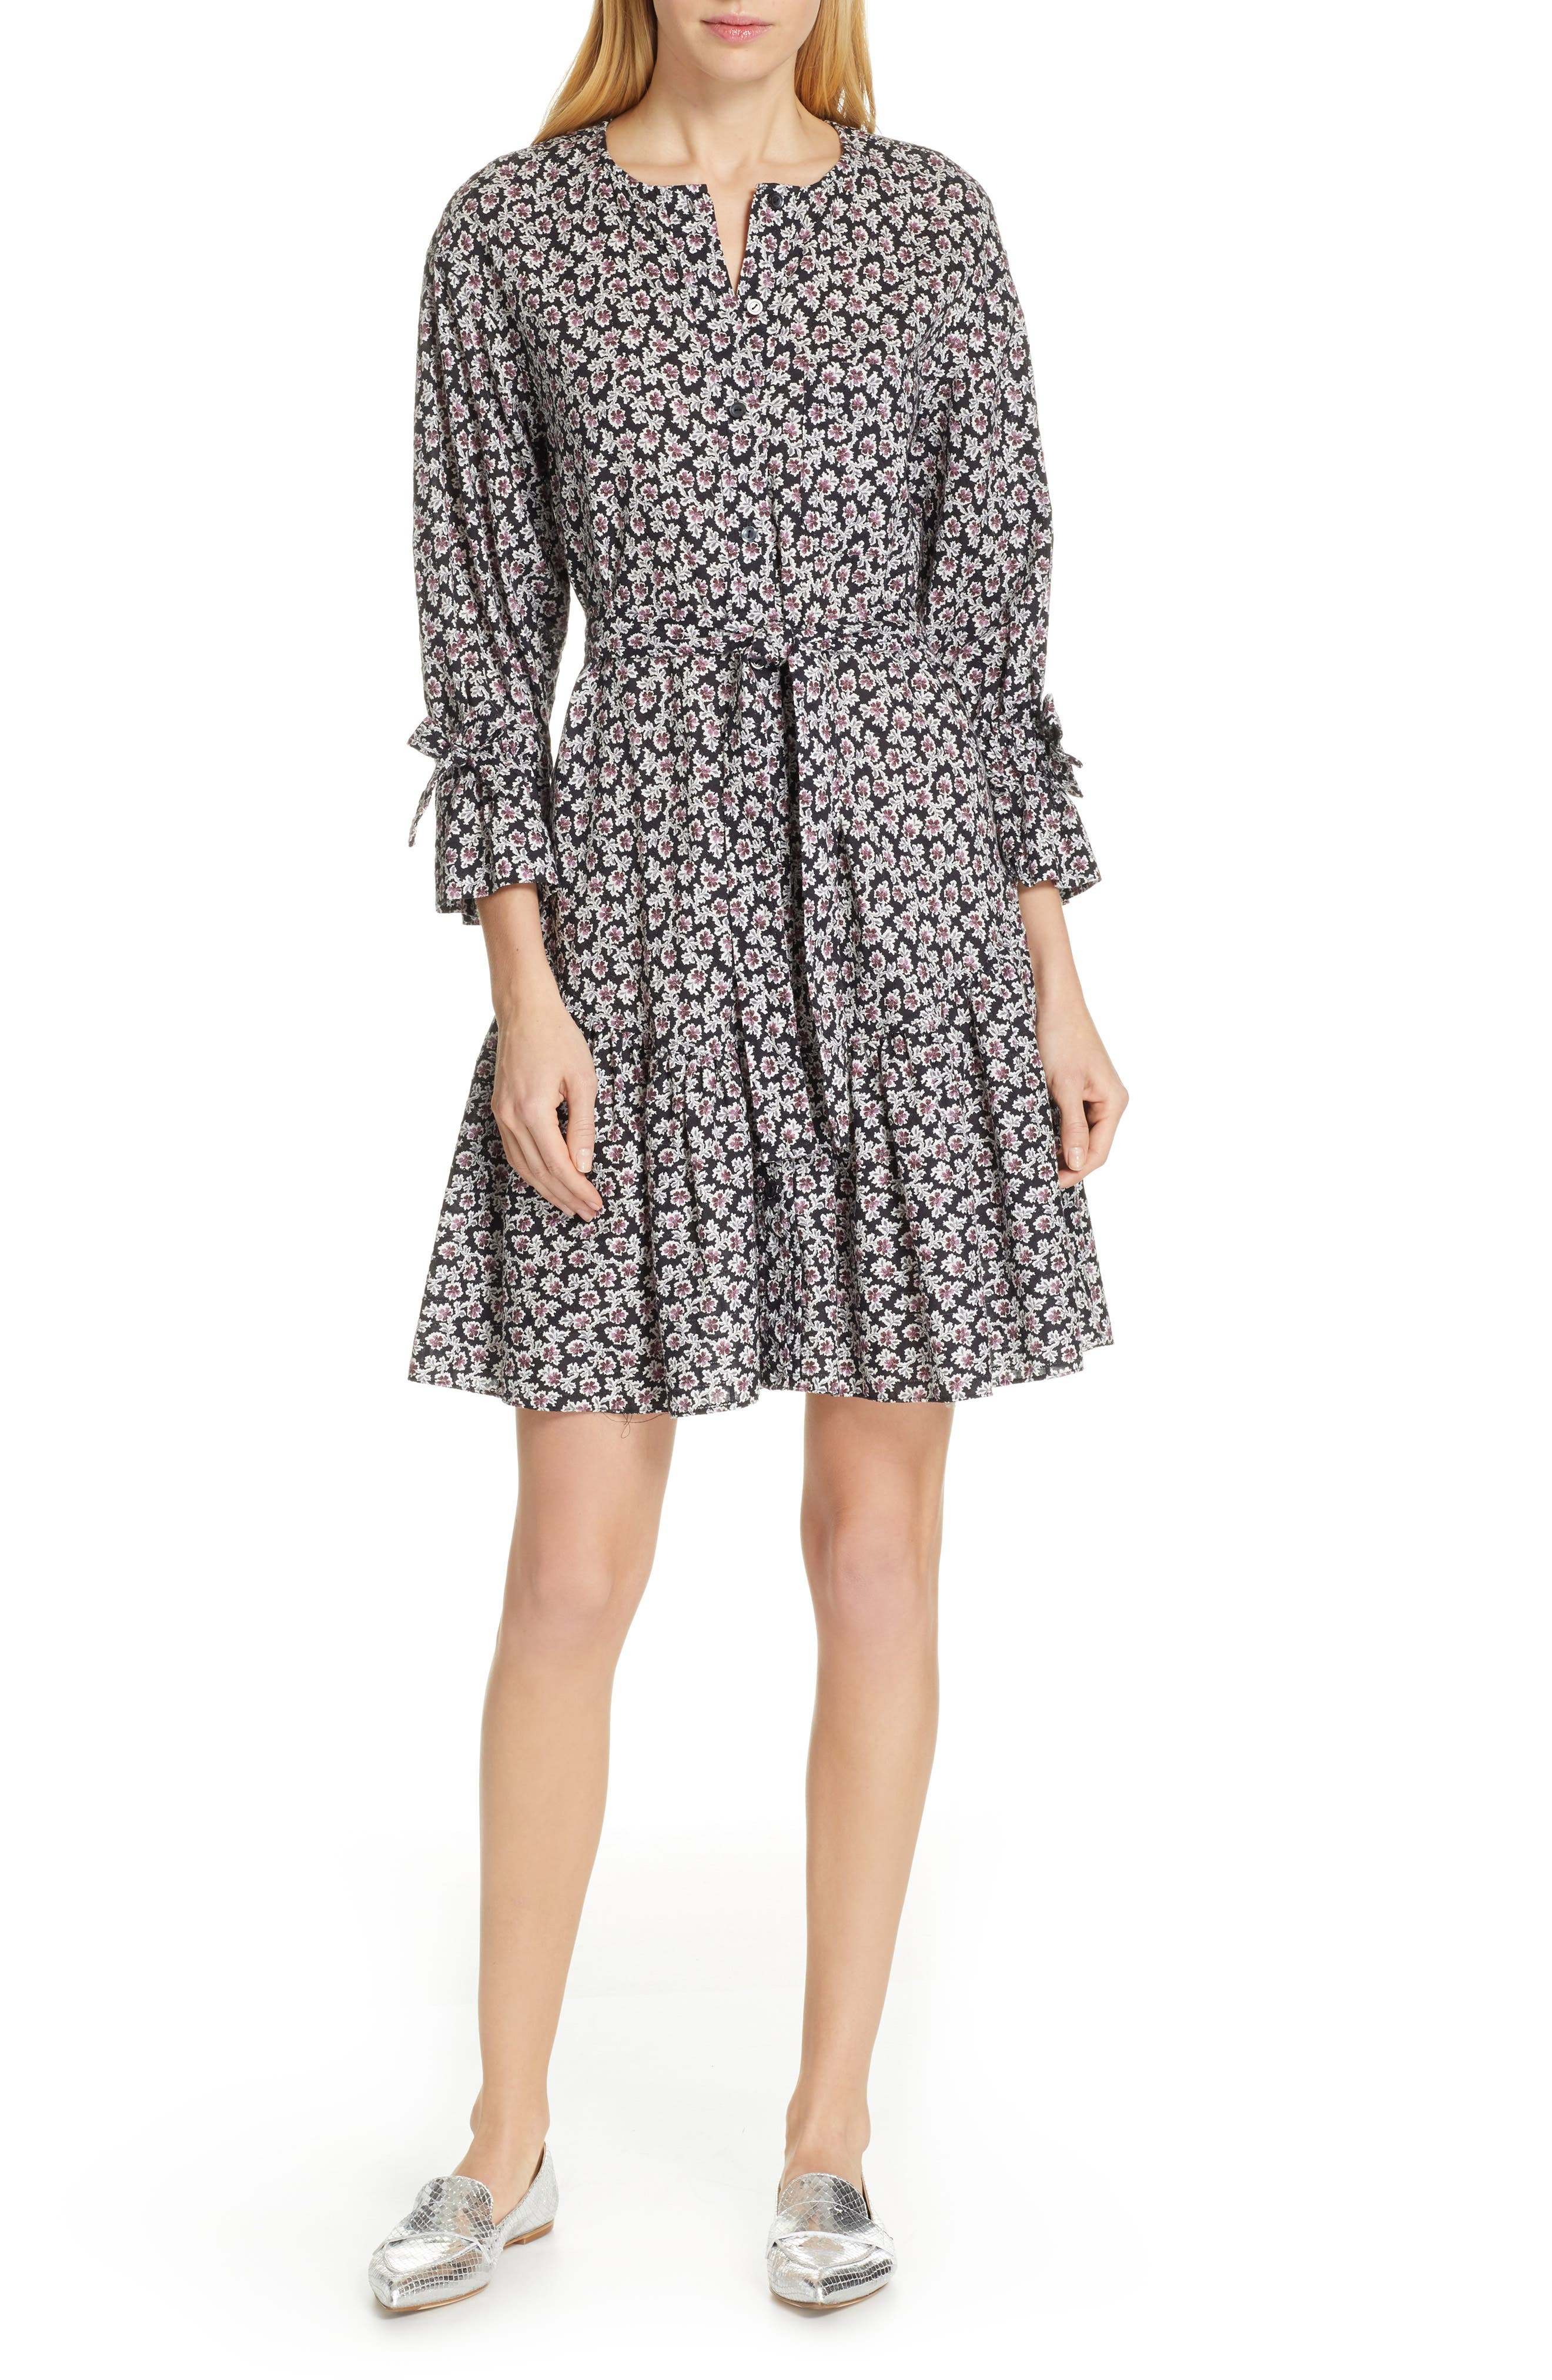 La Vie Rebecca Taylor Fabrice Floral Dress, Black